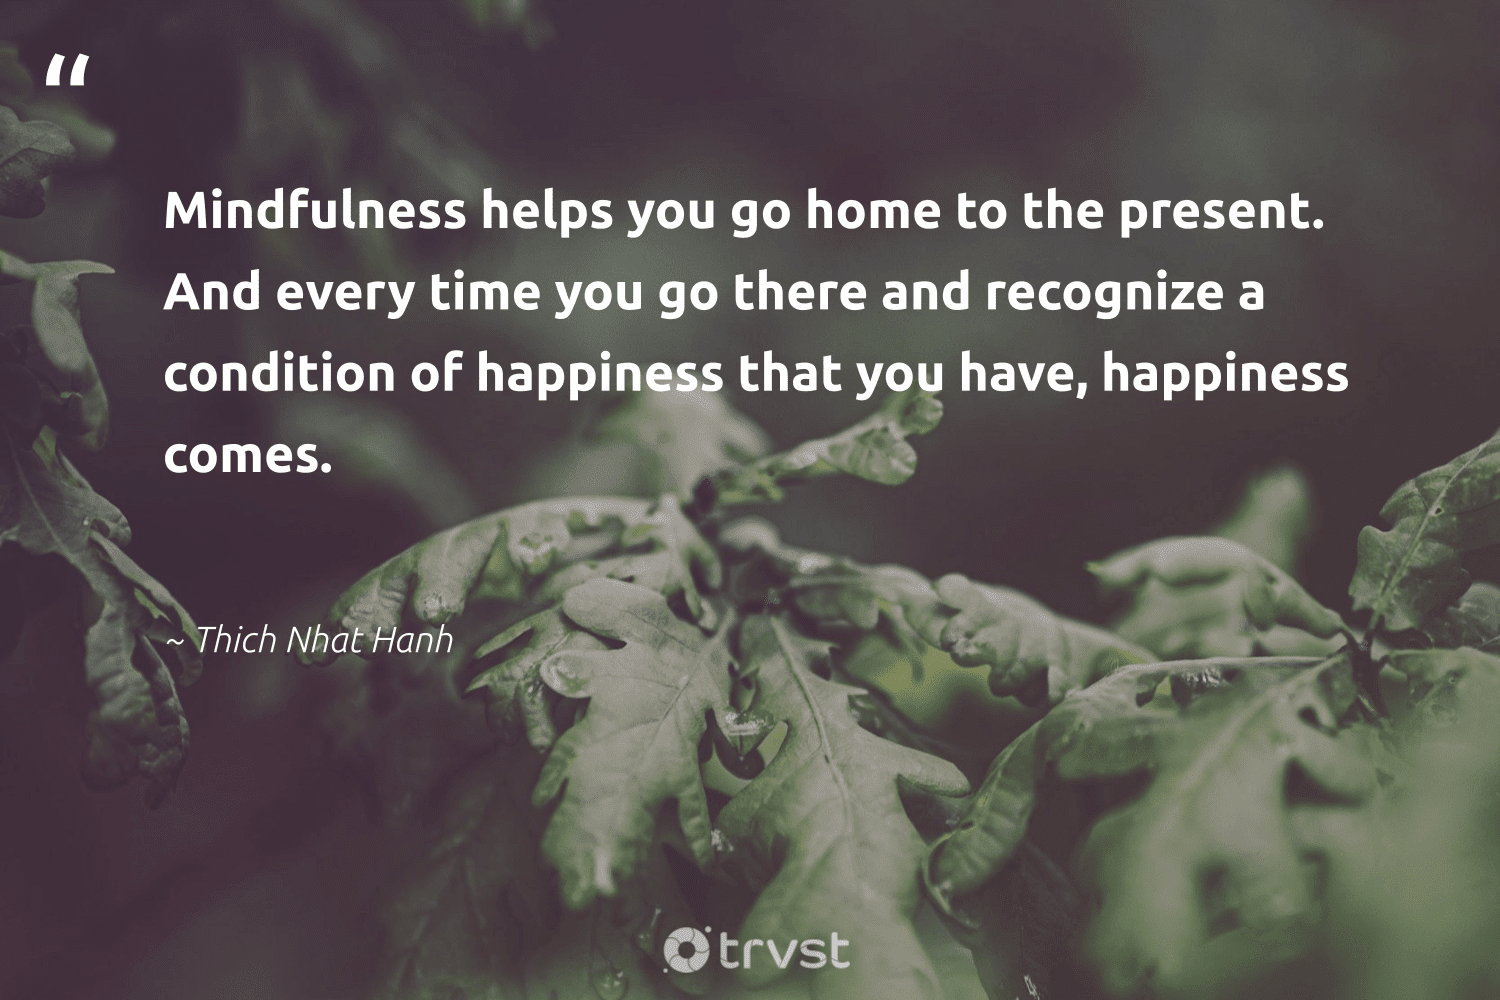 """""""Mindfulness helps you go home to the present. And every time you go there and recognize a condition of happiness that you have, happiness comes.""""  - Thich Nhat Hanh #trvst #quotes #mindset #happiness #mindfulness #meditation #begreat #health #collectiveaction #goals #nevergiveup #togetherwecan"""